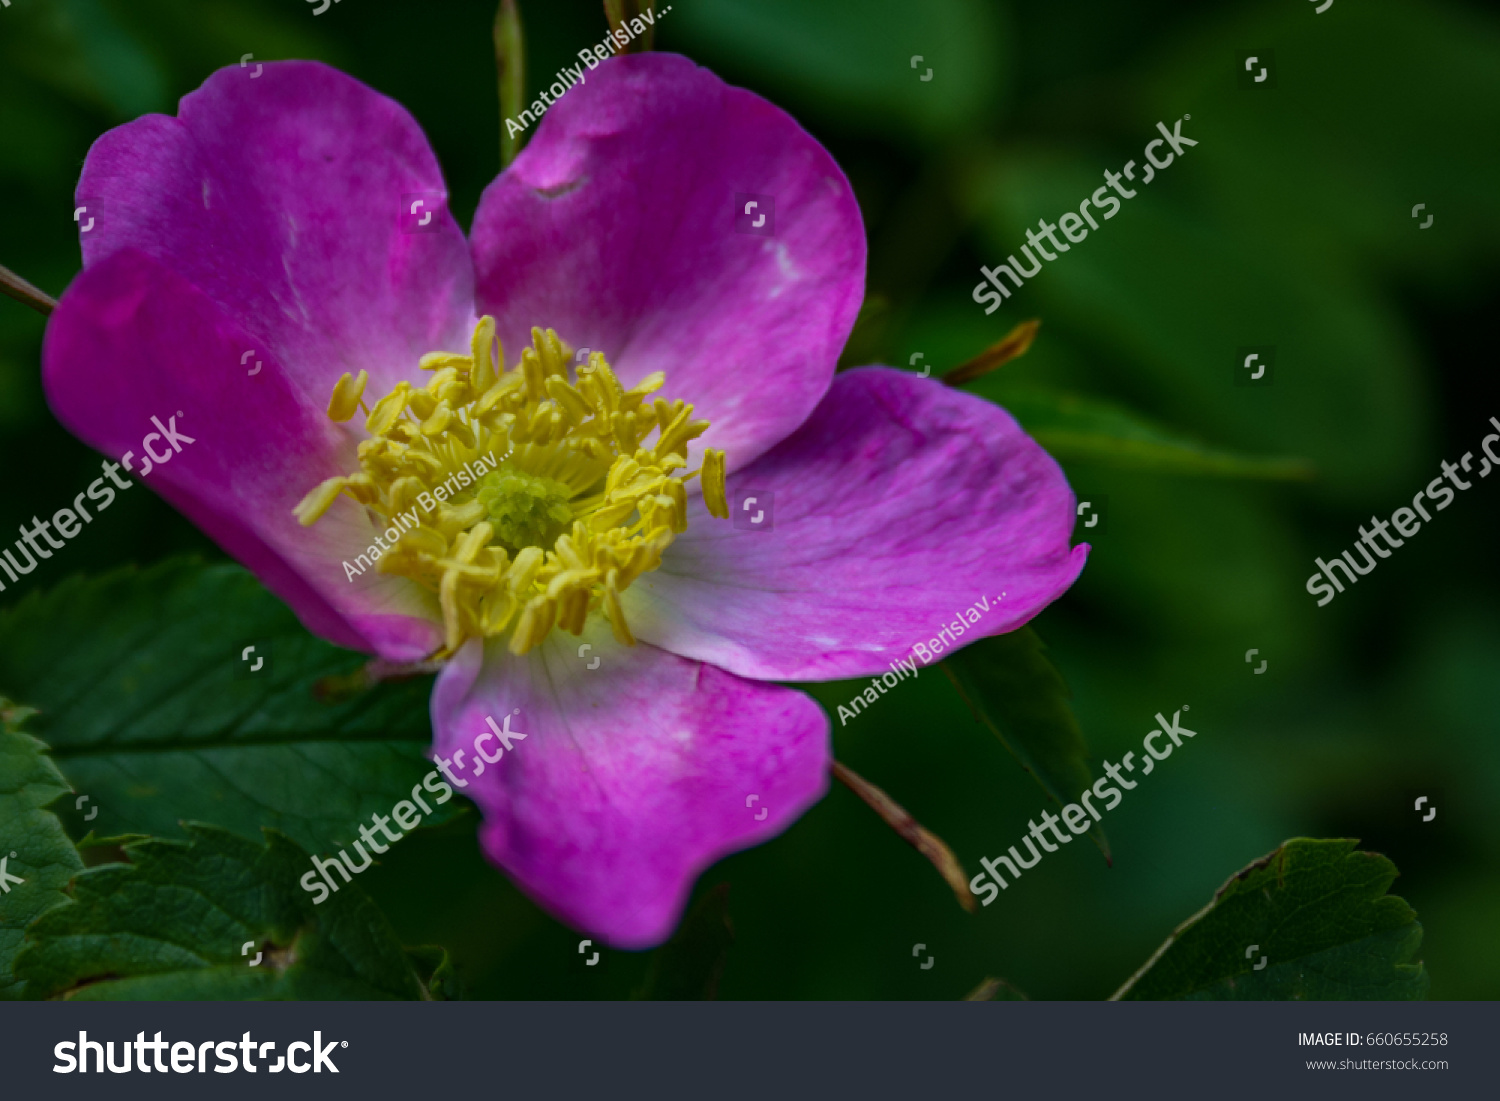 Briar Flowers A Bush Of A Blossoming Dog Rose Pink Flowers Of A